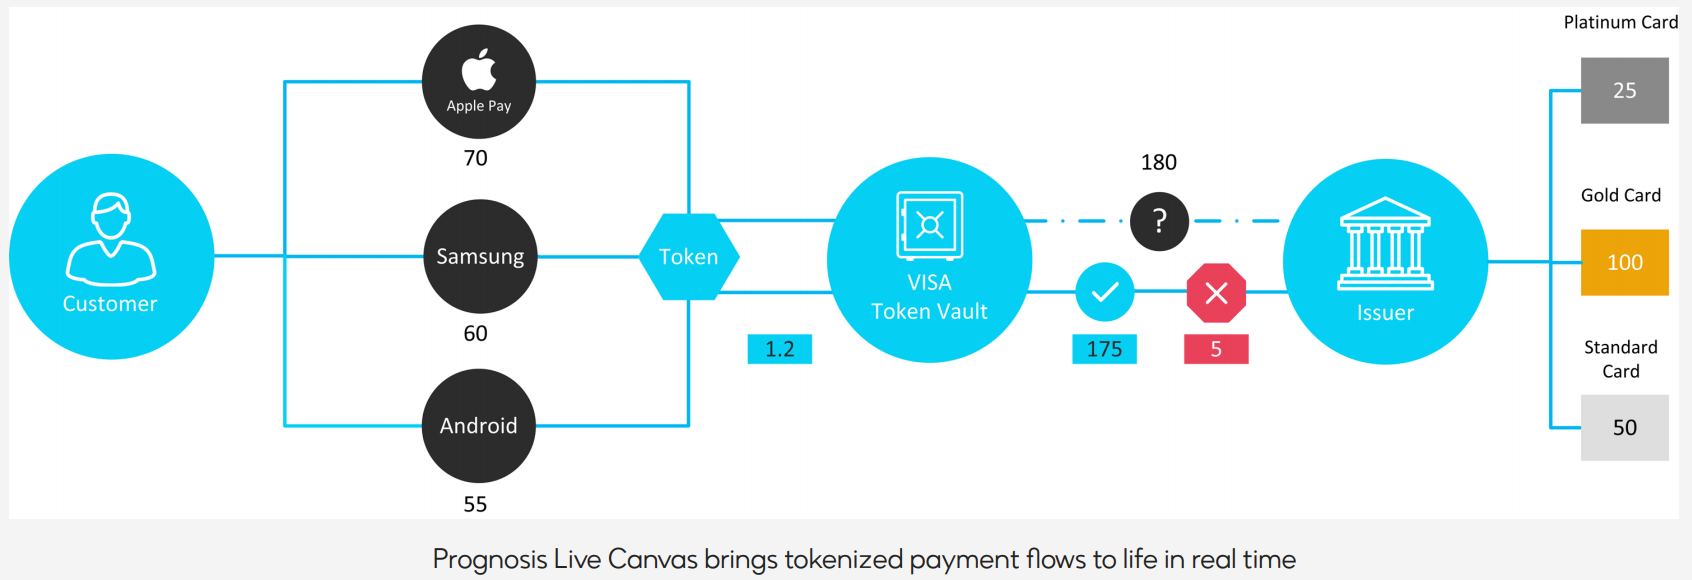 Prognosis-Live-Canvas-Tokenize-payment-flows